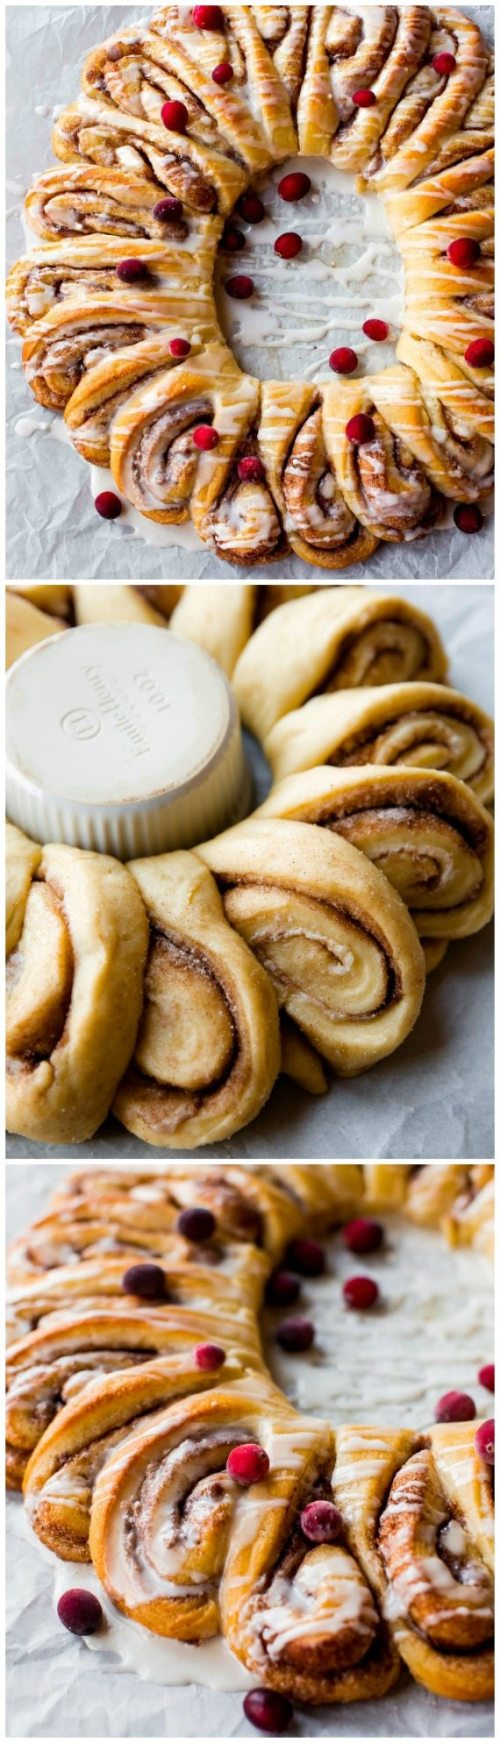 Medium Of Pillsbury Cinnamon Roll Recipes